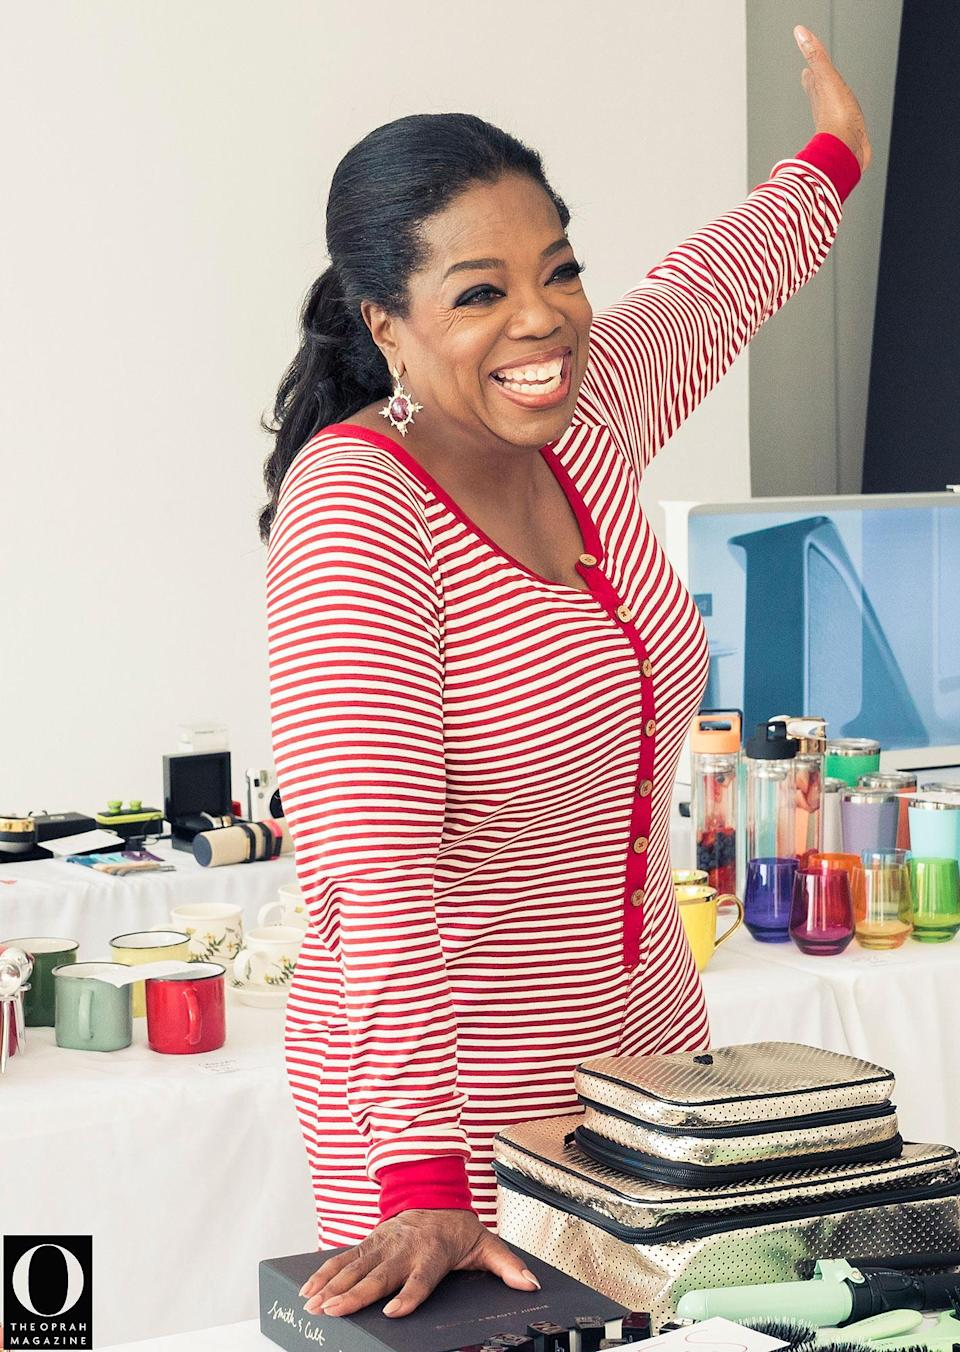 10 Items from Oprah's Favorite Things That Will Make You Hungry